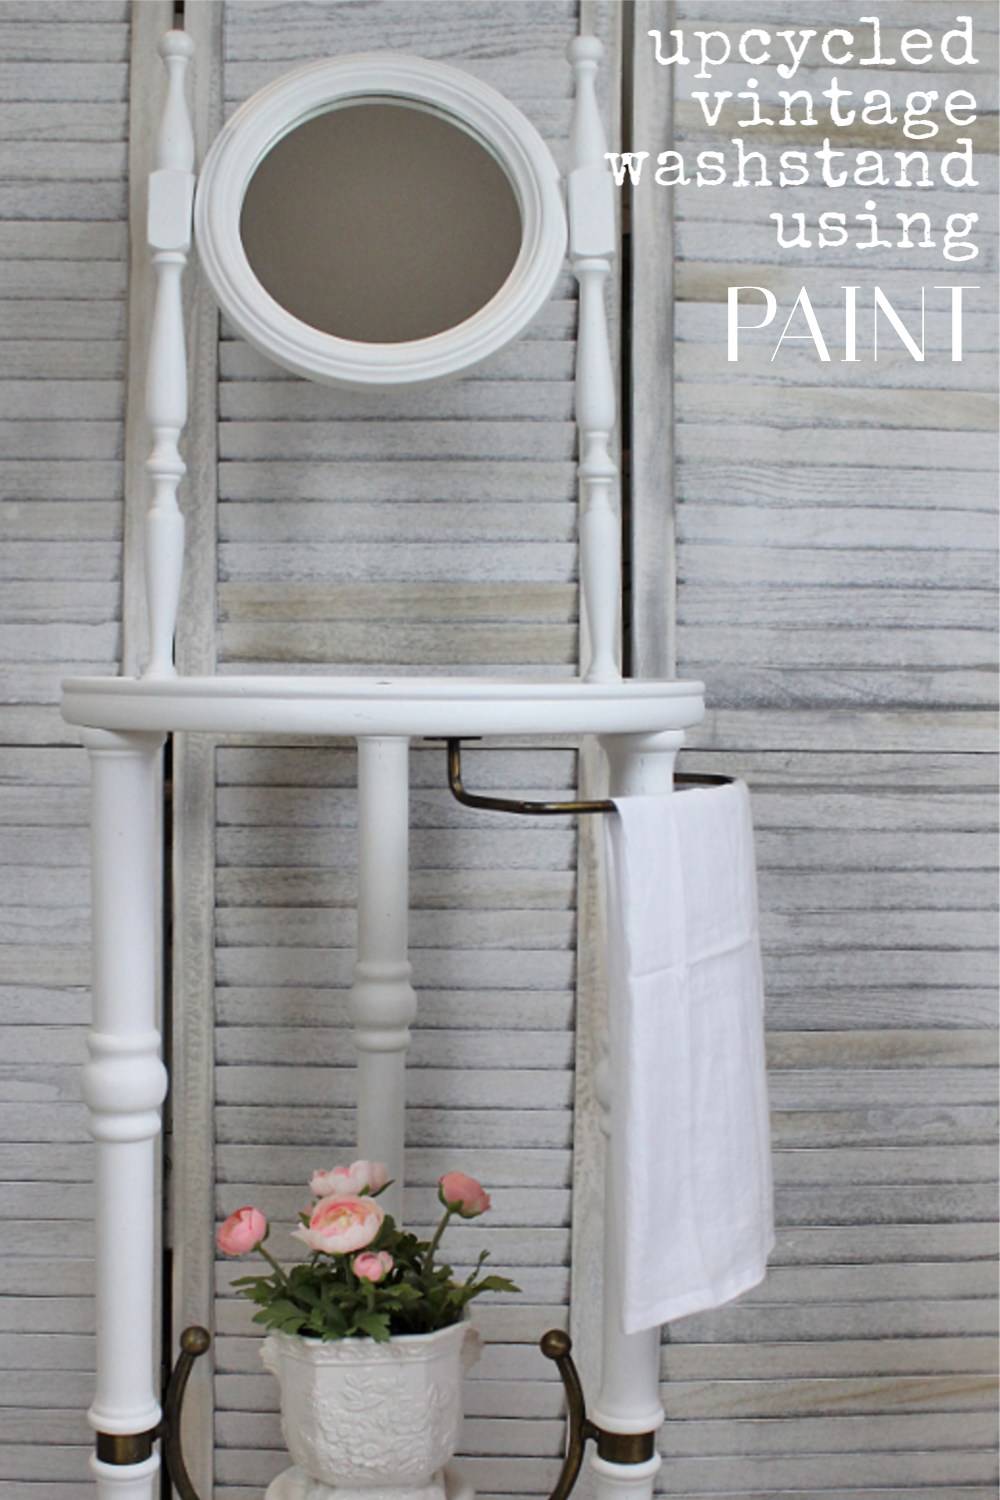 Sharing a fun easy way on how to upcycle a vintage washstand using Fusion Mineral Paint | www.raggedy-bits.com | #raggedybits #DIY #upcycle #furnituremakeover #fusionmineralpaint